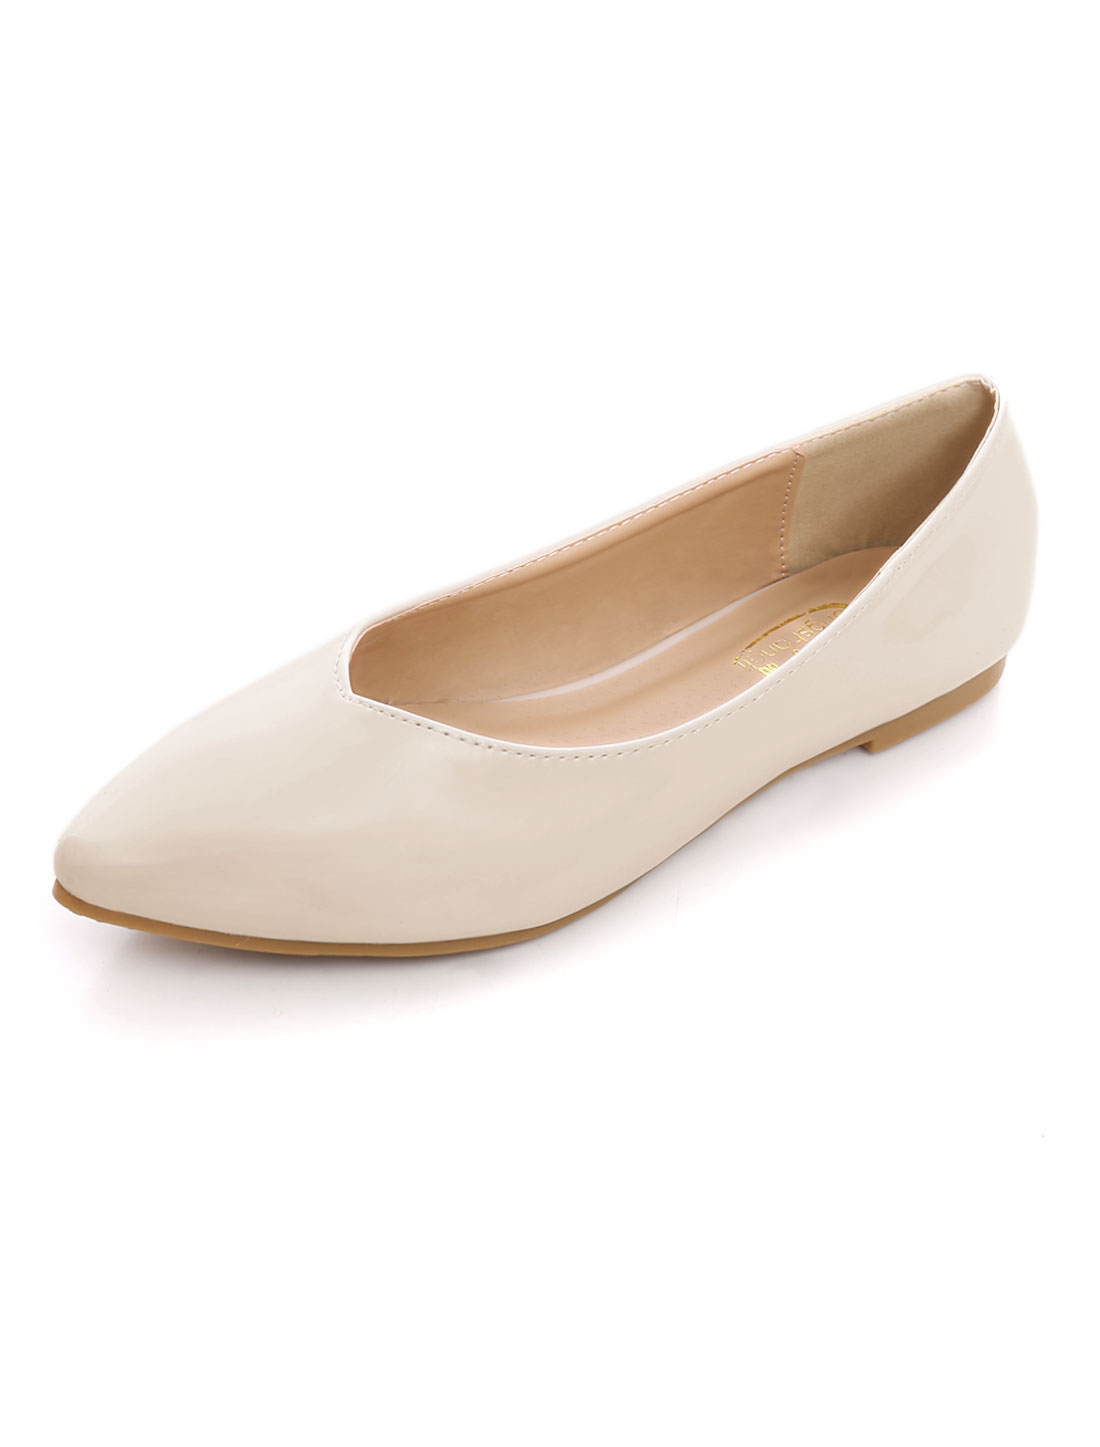 Lady V-Cut Vamp Point-Toe Ballet Basic Comfort Flat Apricot US 8.5